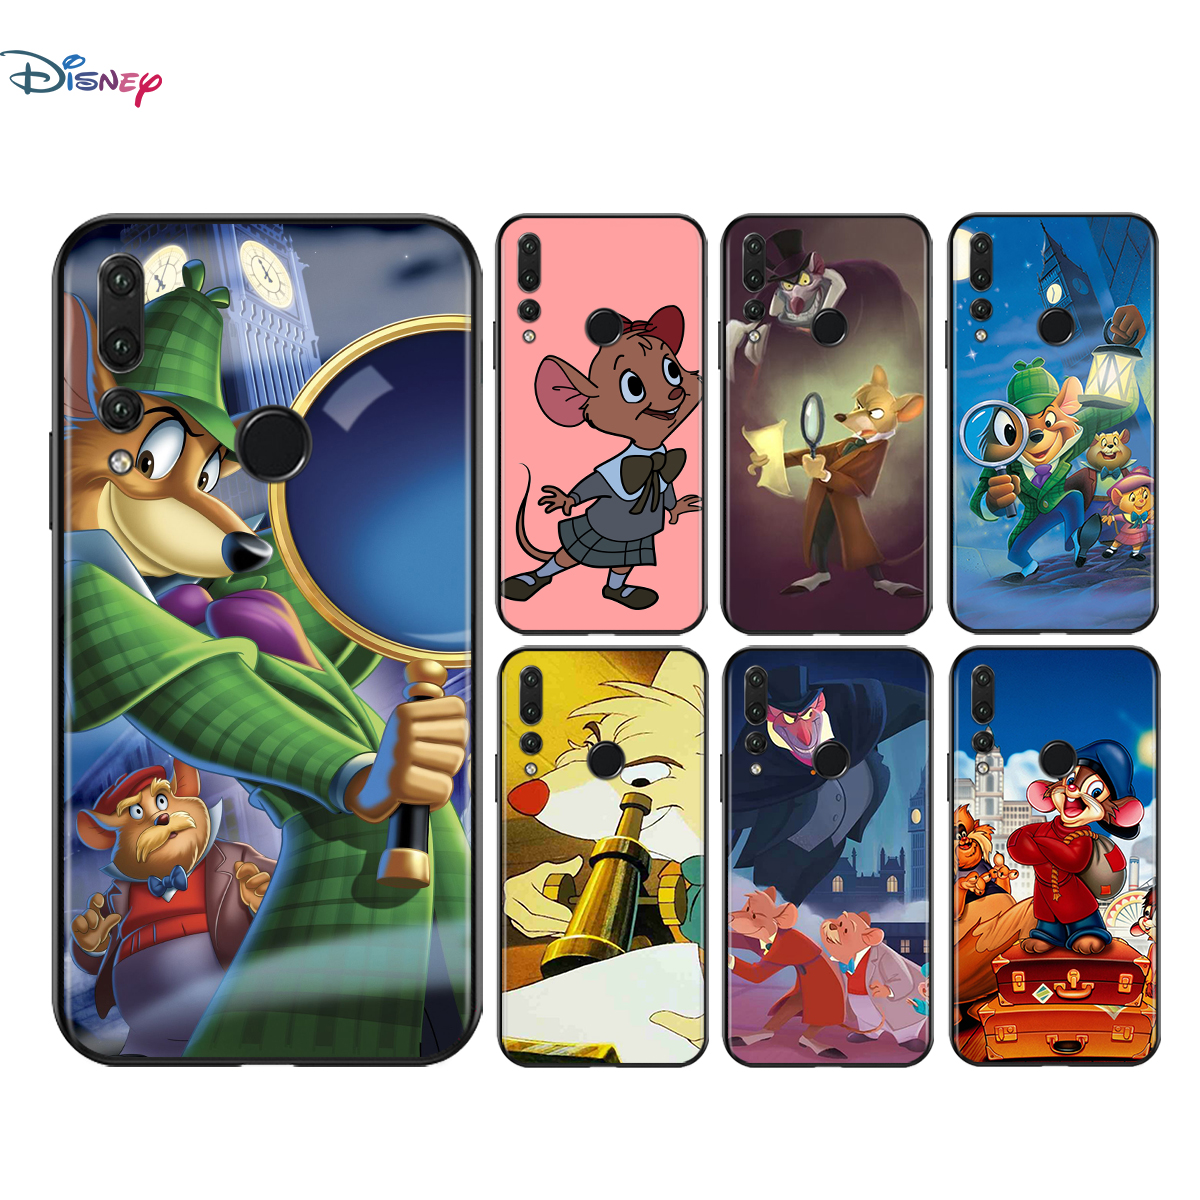 Silicone Cover Great Mouse Detective For Honor V30 30i 10X 30S 9A 9S 9X 30 9C 20 S V20 10i 10 7C Pro Lite Phone Case